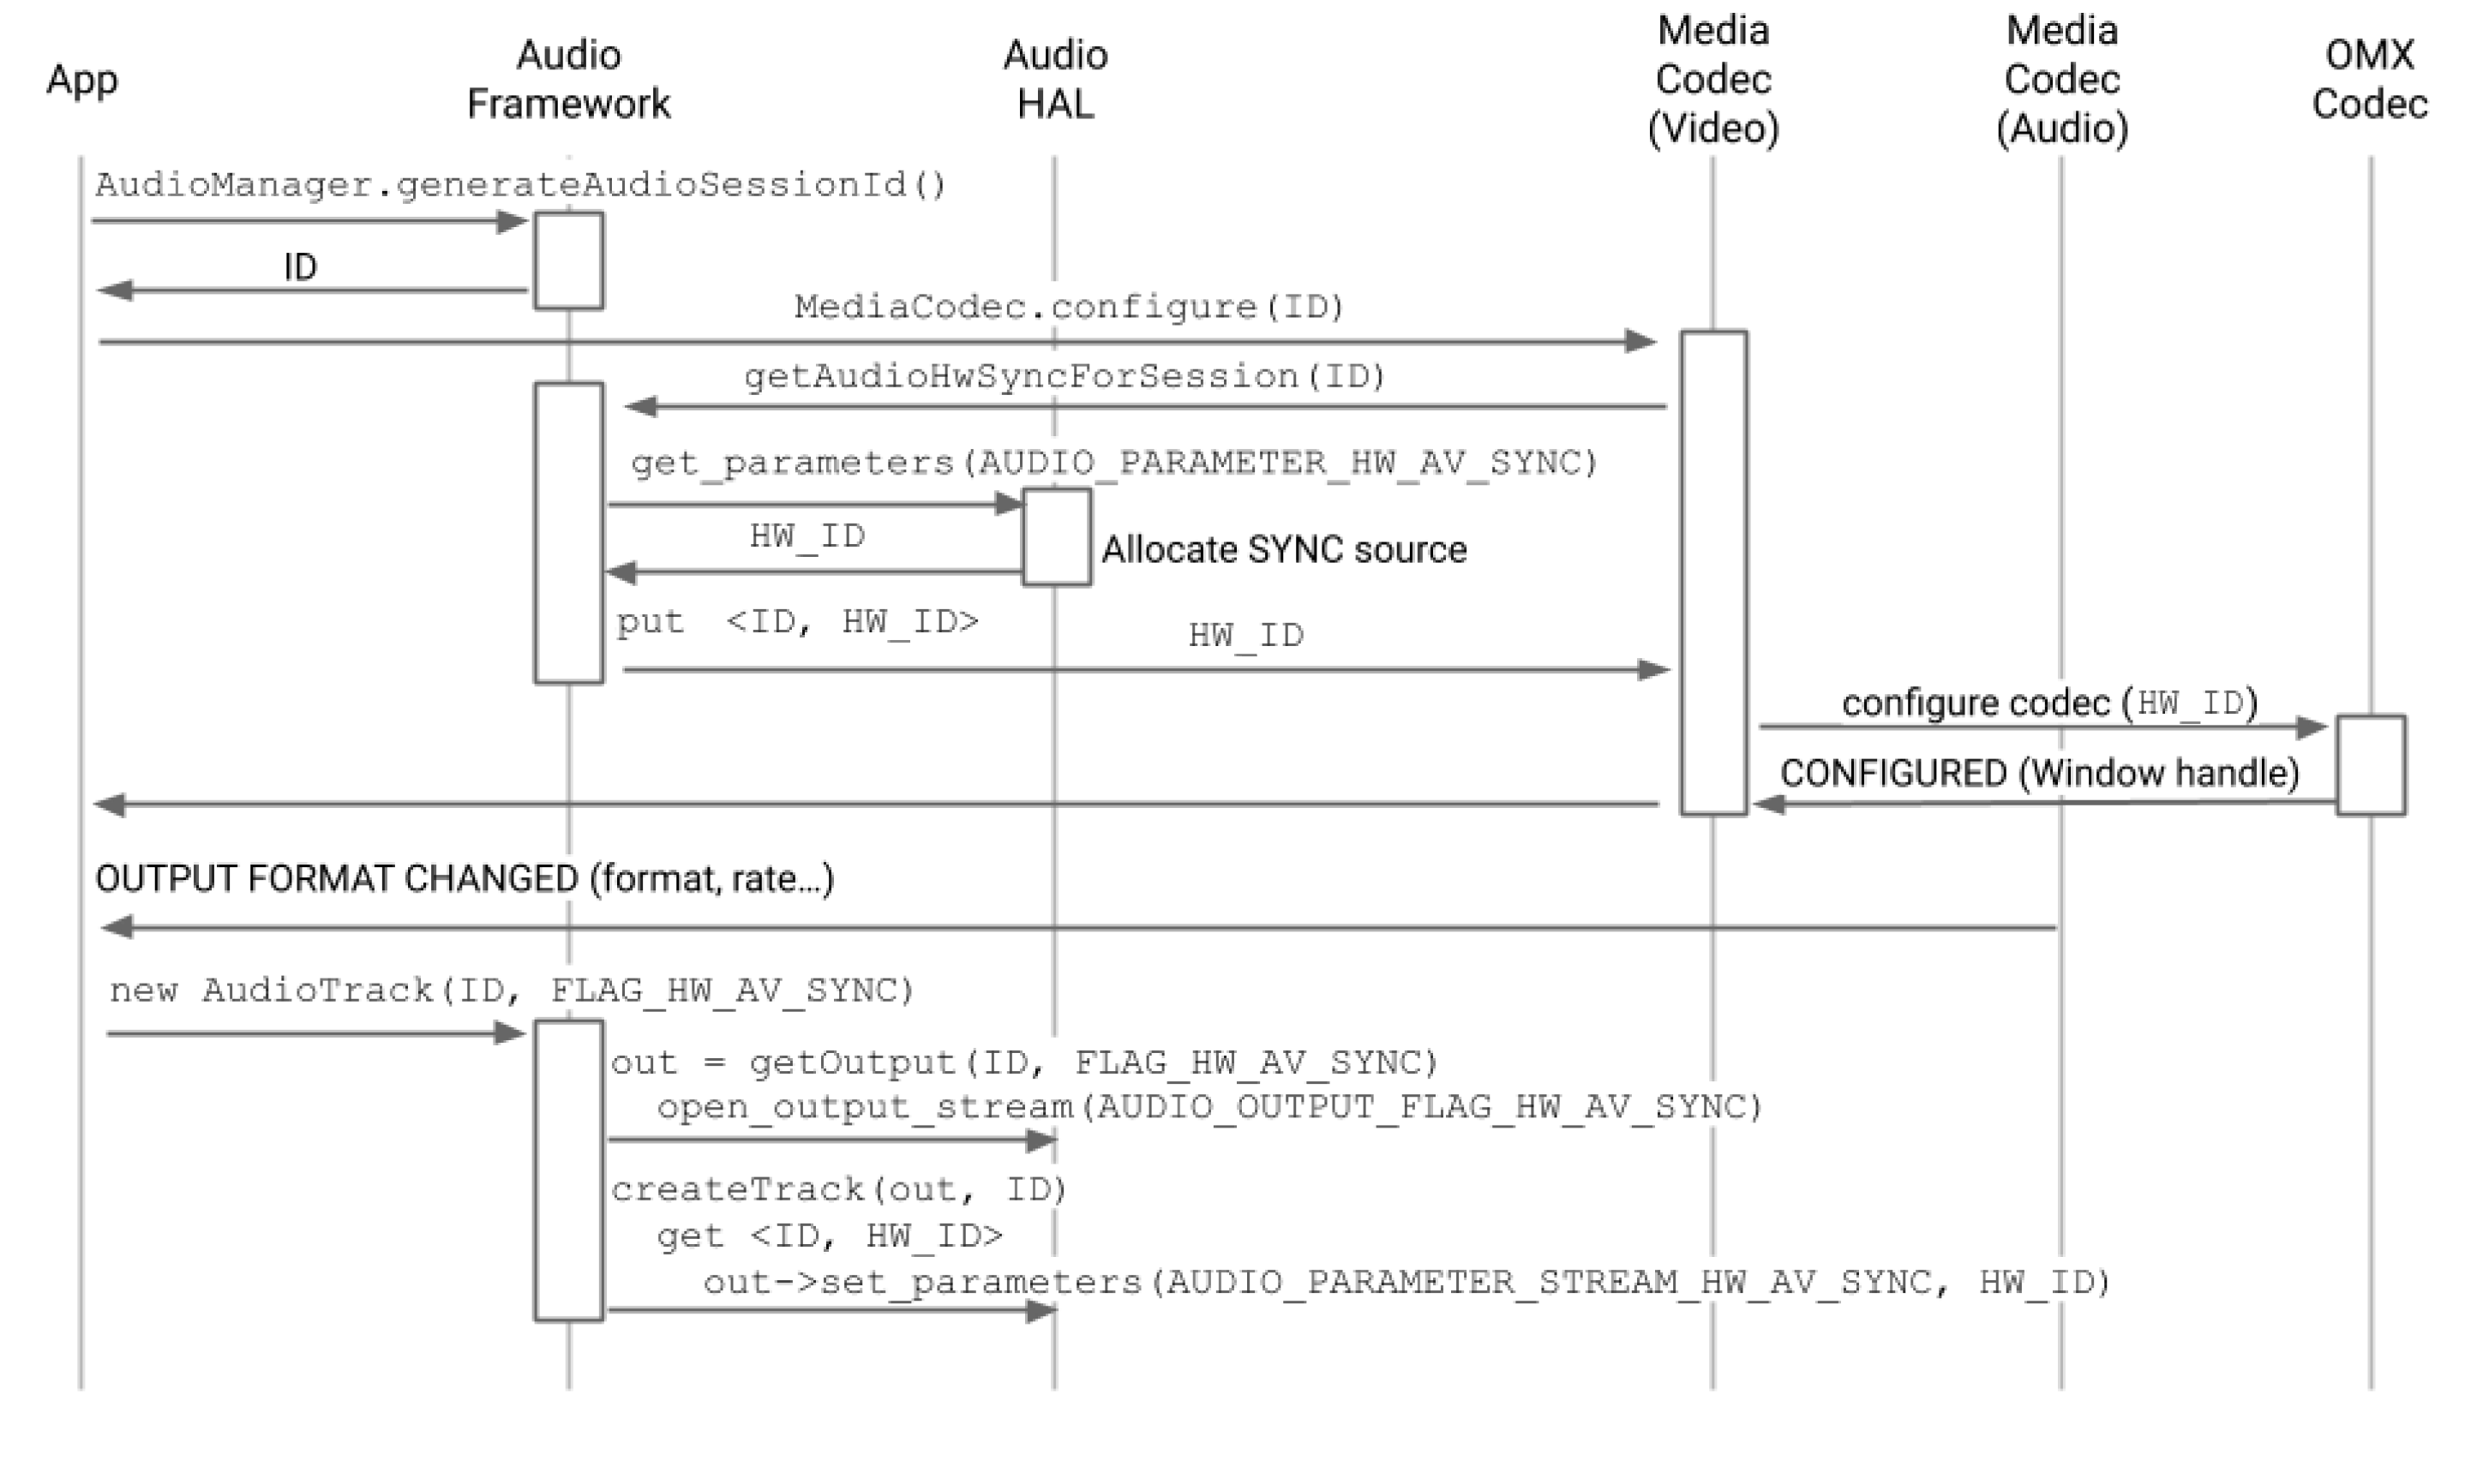 Diagram of the audio track created after codec configure